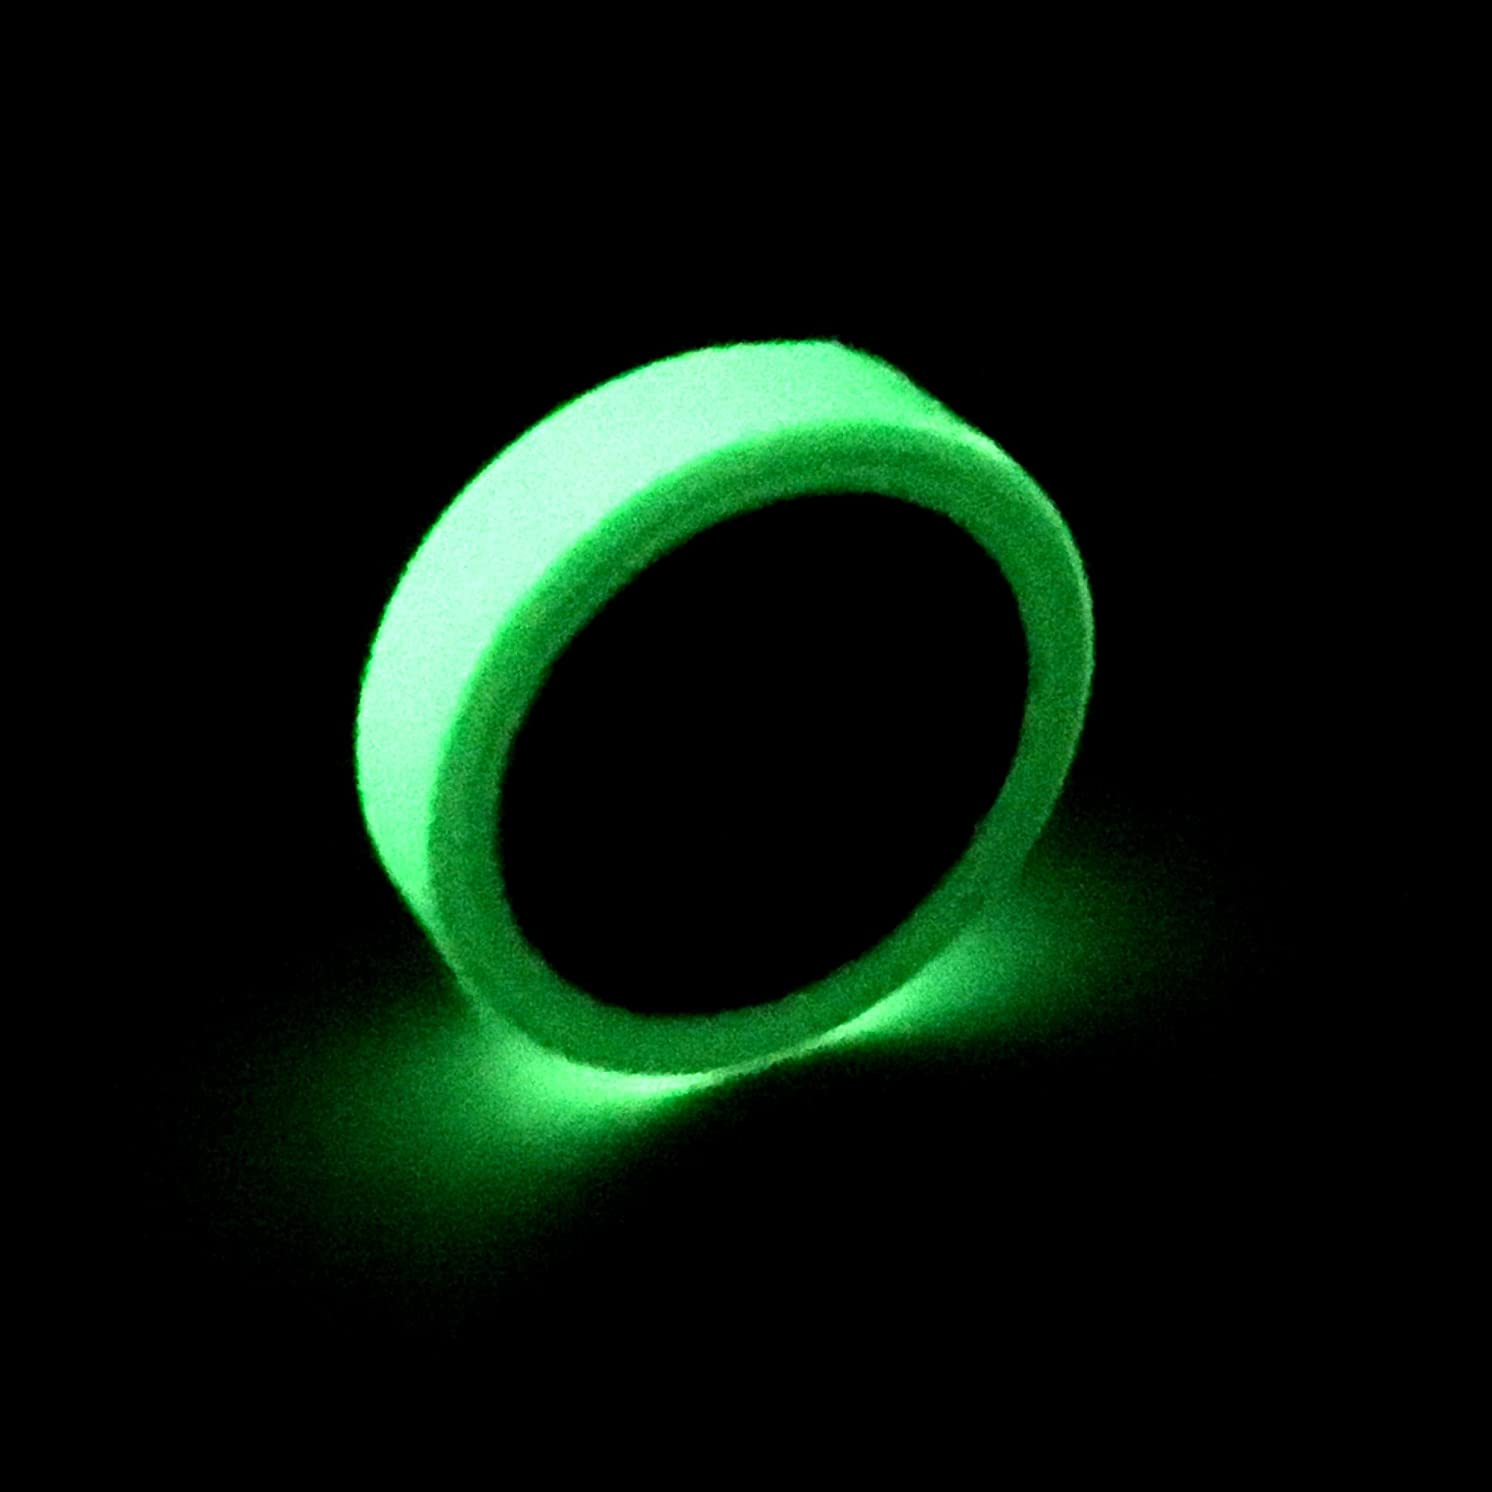 Fun Central BC757, 1 Pc, 30 Ft by 1 Inch Glow in The Dark Tape, Glowing Tape, Neon Glow Tape, Glow in The Dark Reflective Tape, Glow Masking Tape